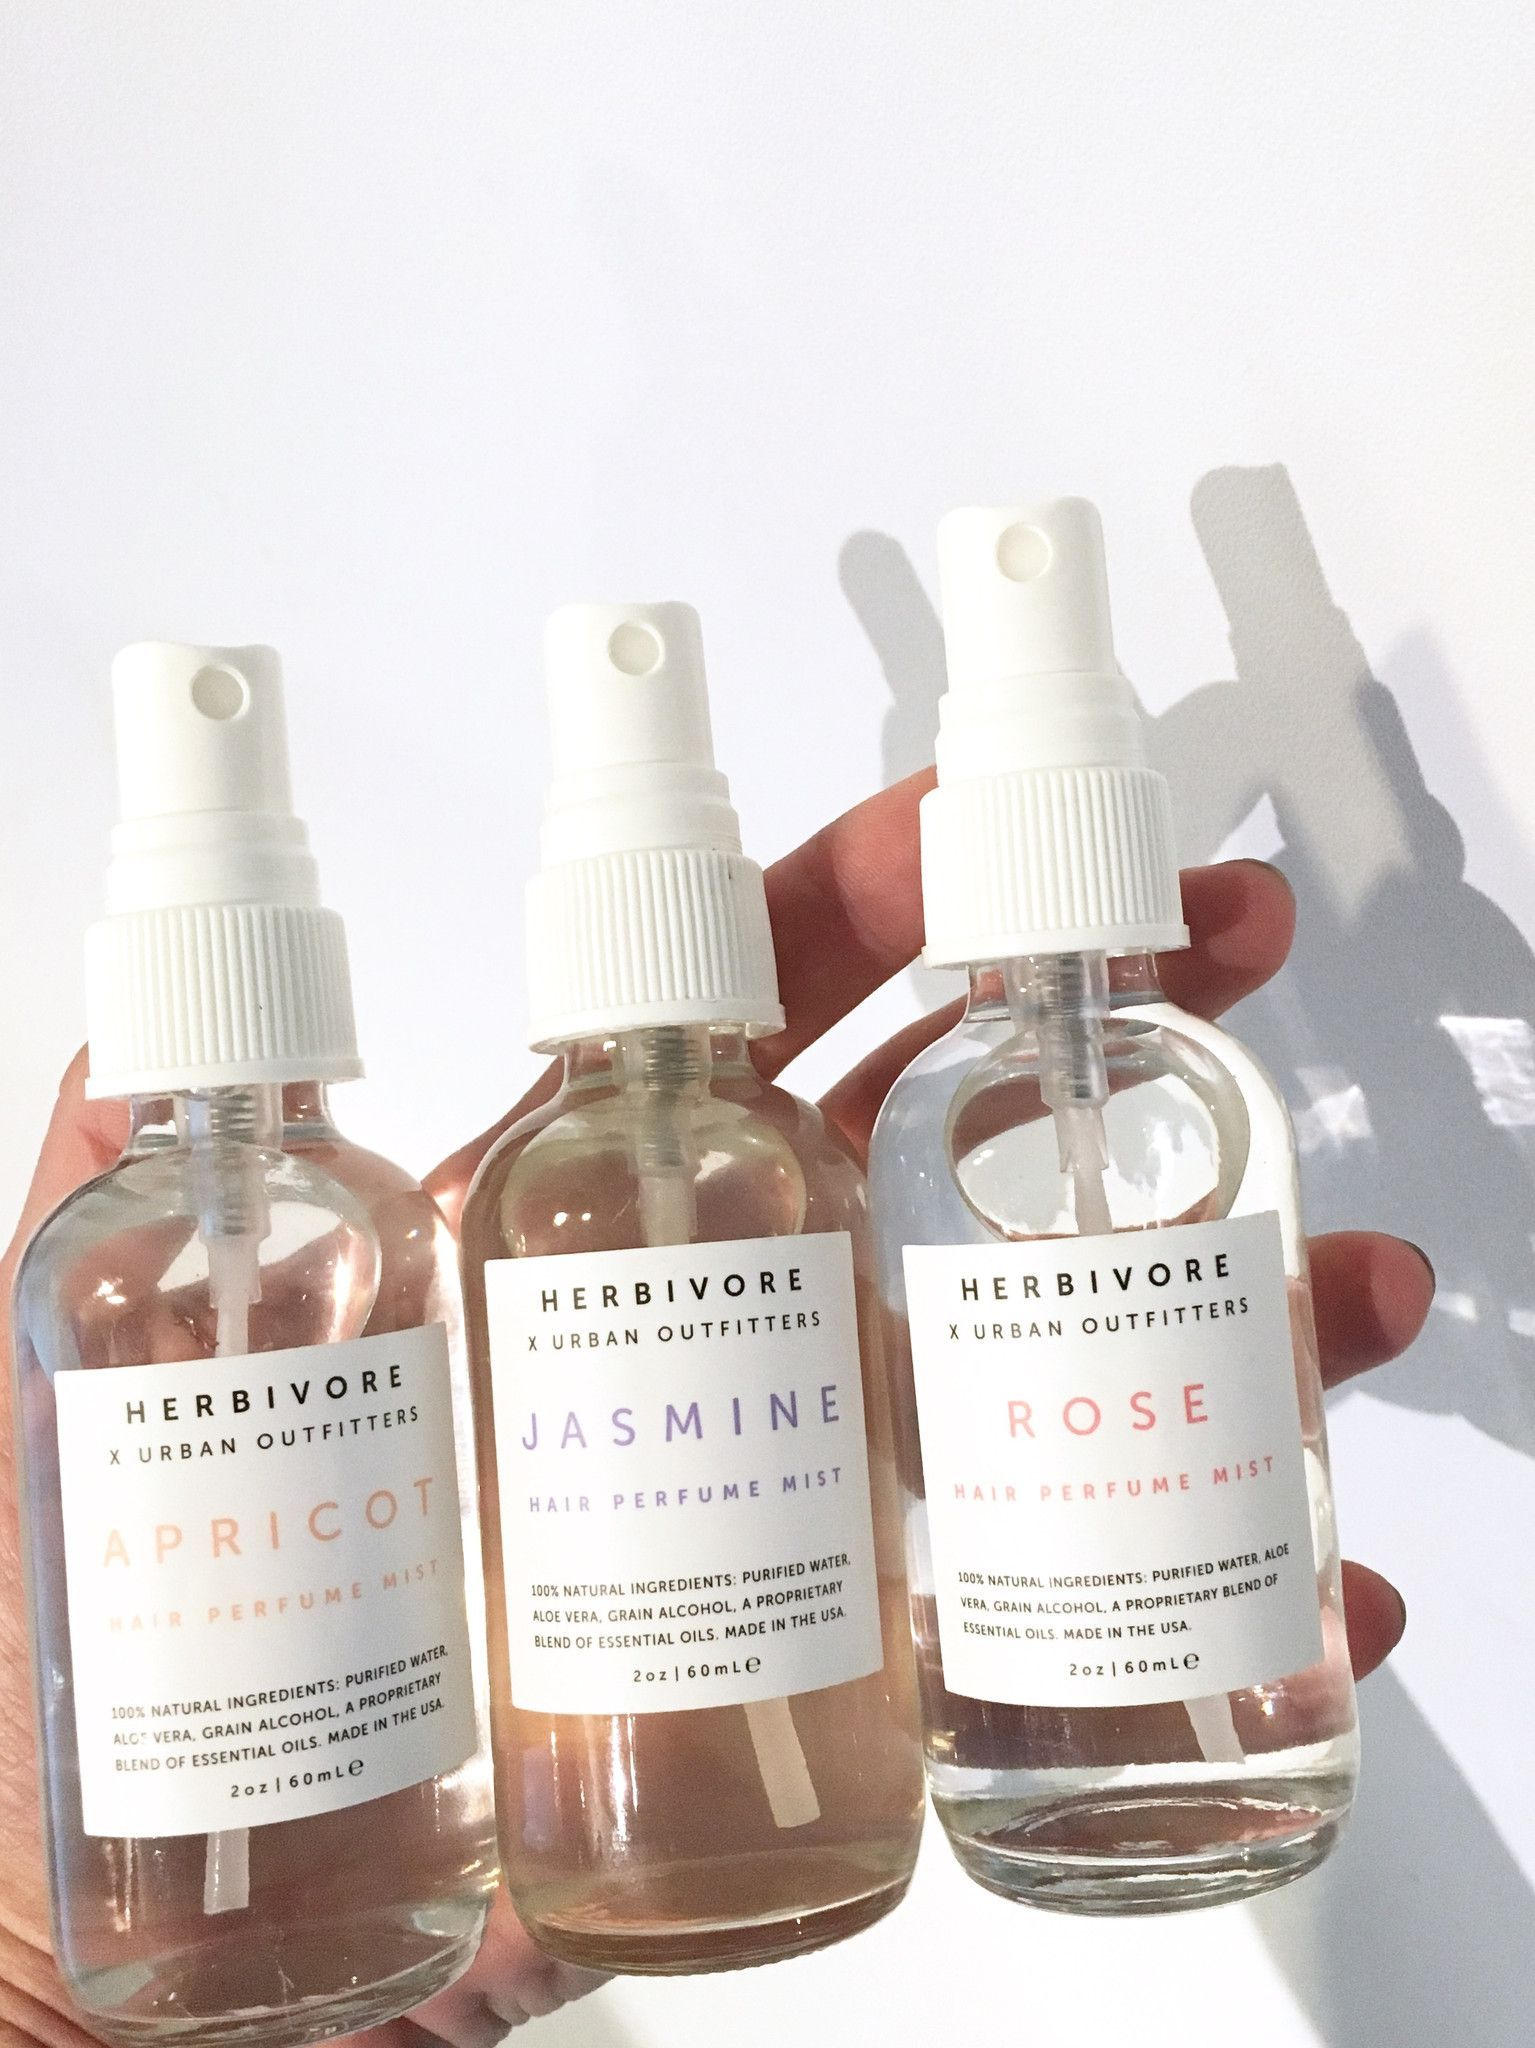 Herbivore Hair Perfume Mist - yum. #crueltyfree #organic #haircare #style #shopping #styles #outfit #pretty #girl #girls #beauty #beautiful #me #cute #stylish #photooftheday #swag #dress #shoes #diy #design #fashion #Makeup